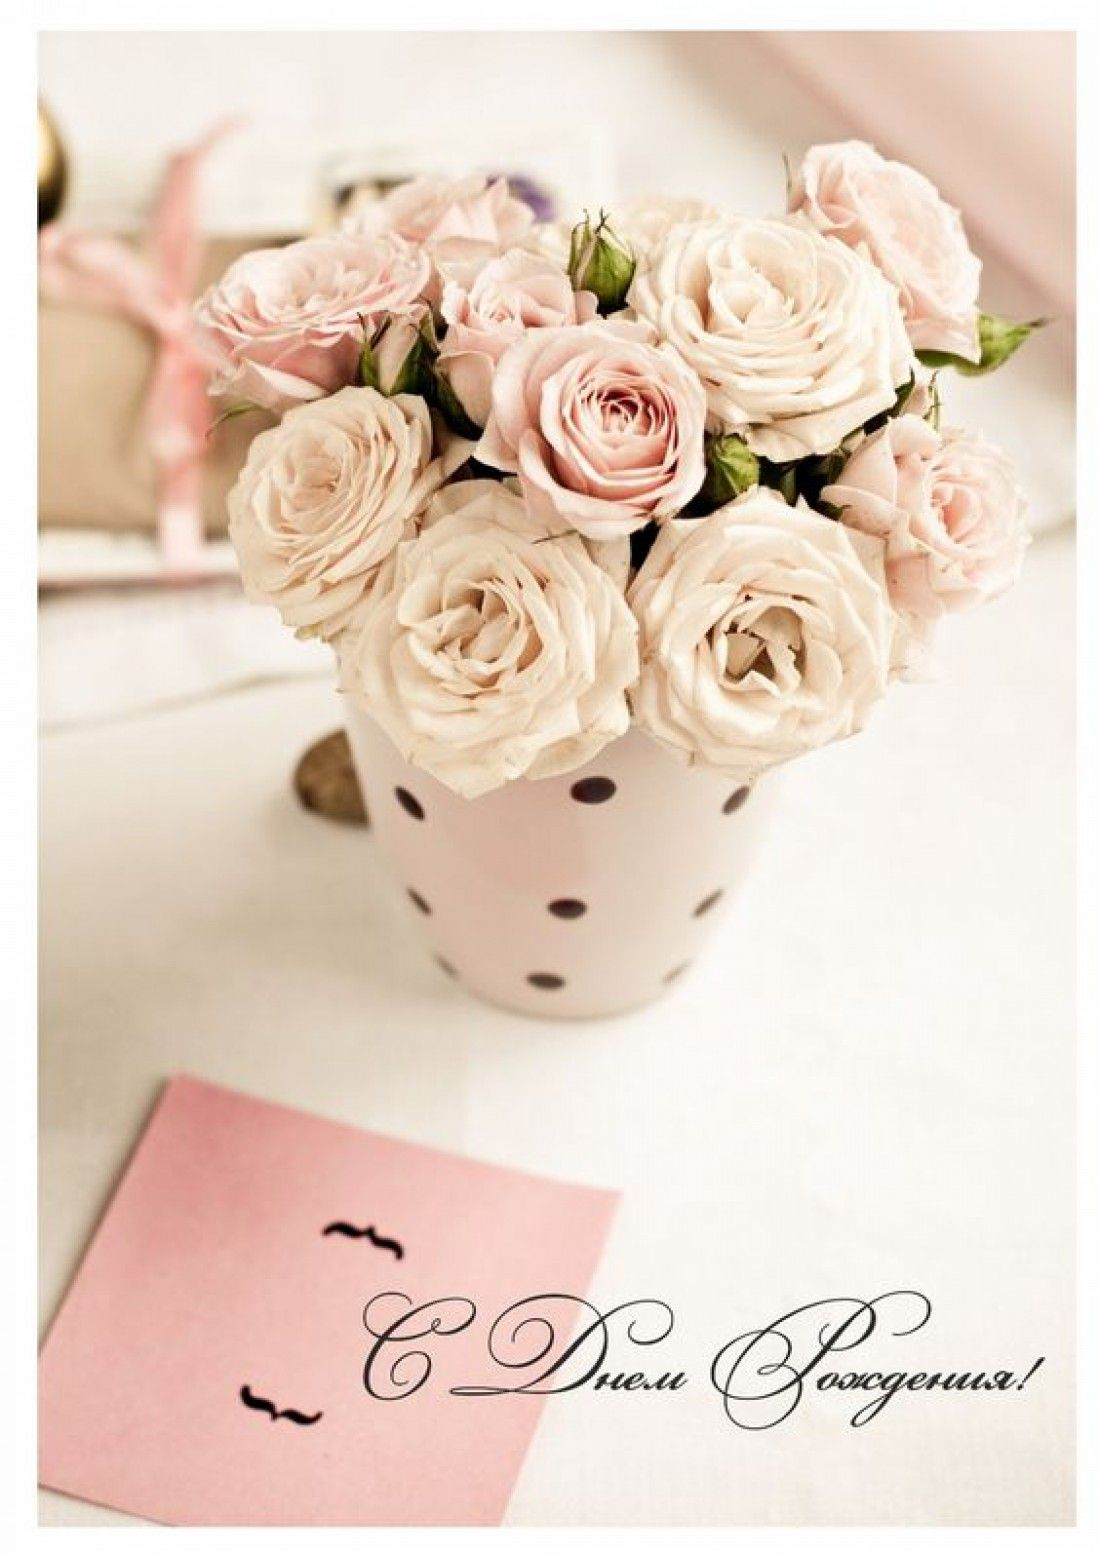 happy birthday pinterest birthday messages kristyandbryce Image collections